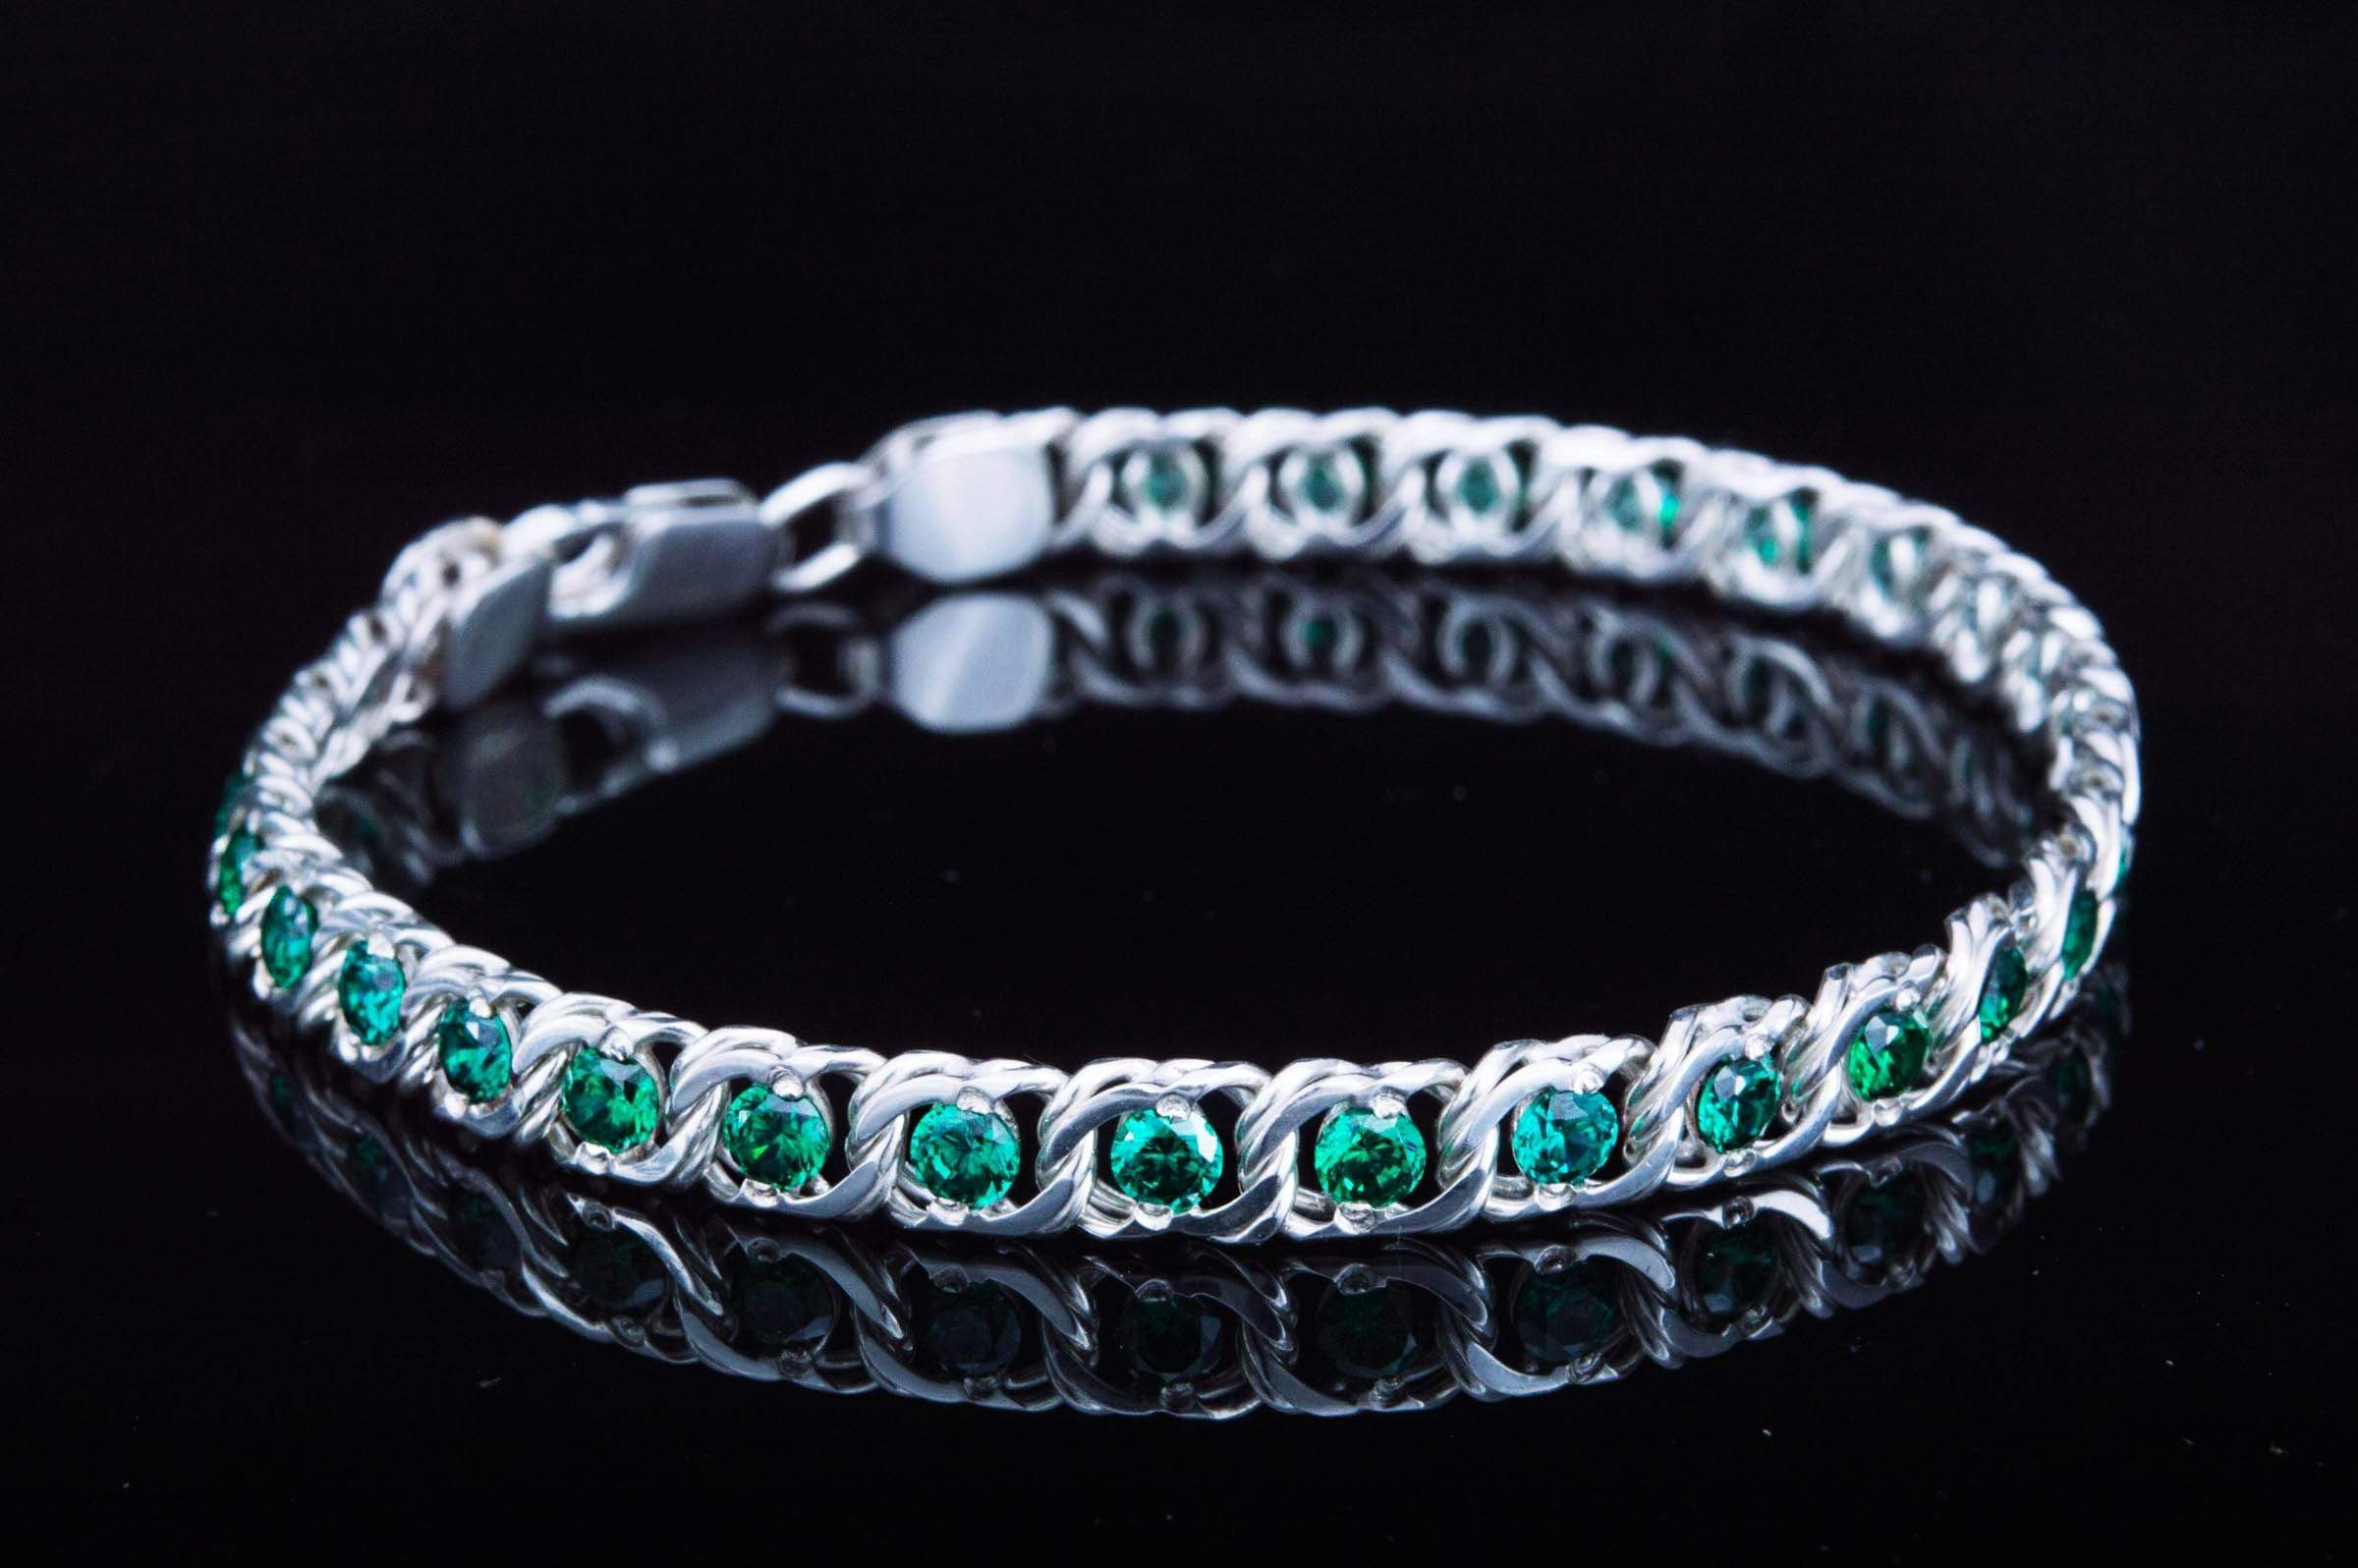 Ancient Smithy VW jewelry Handmade Sterling Silver Bracelet with Green Cubic Zirconoa Jewelry